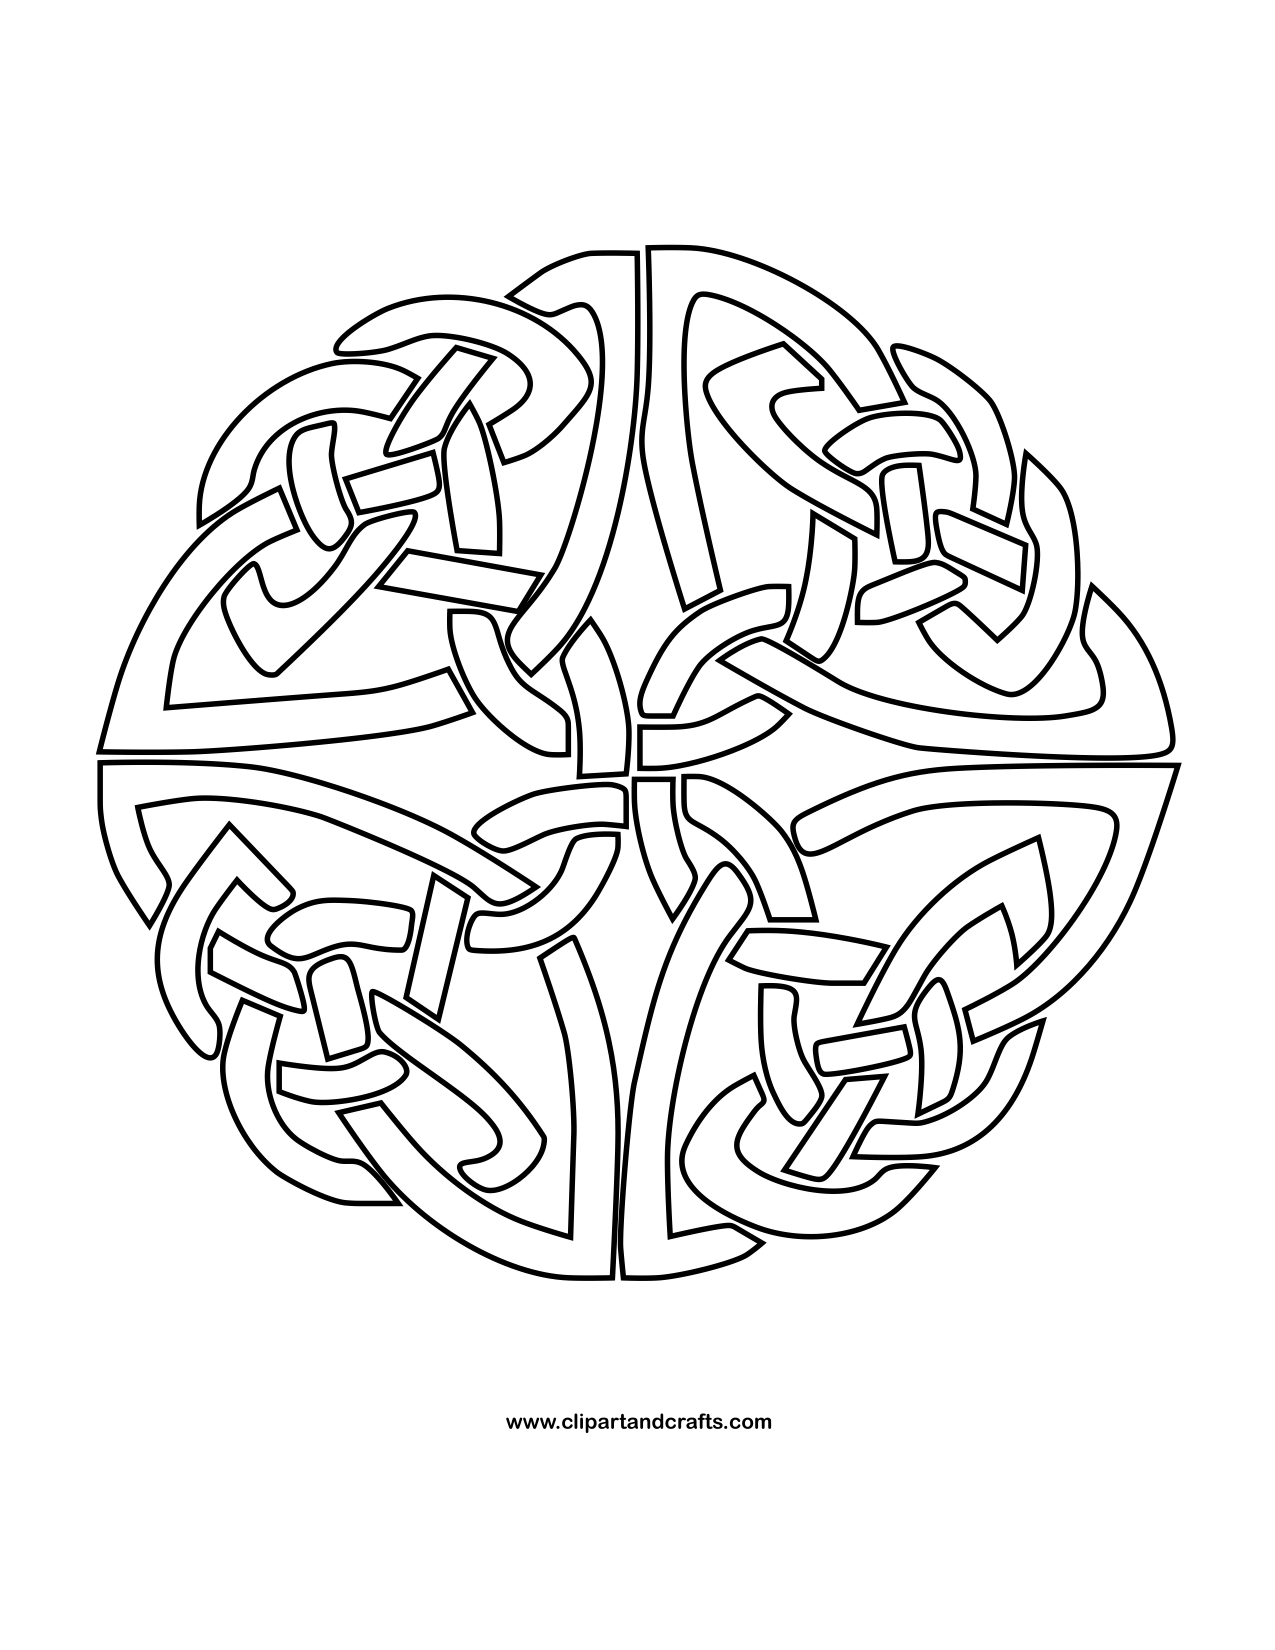 Mandala Monday More Free Celtic Mandalas To Color Celtic Coloring Celtic Coloring Book Celtic Patterns